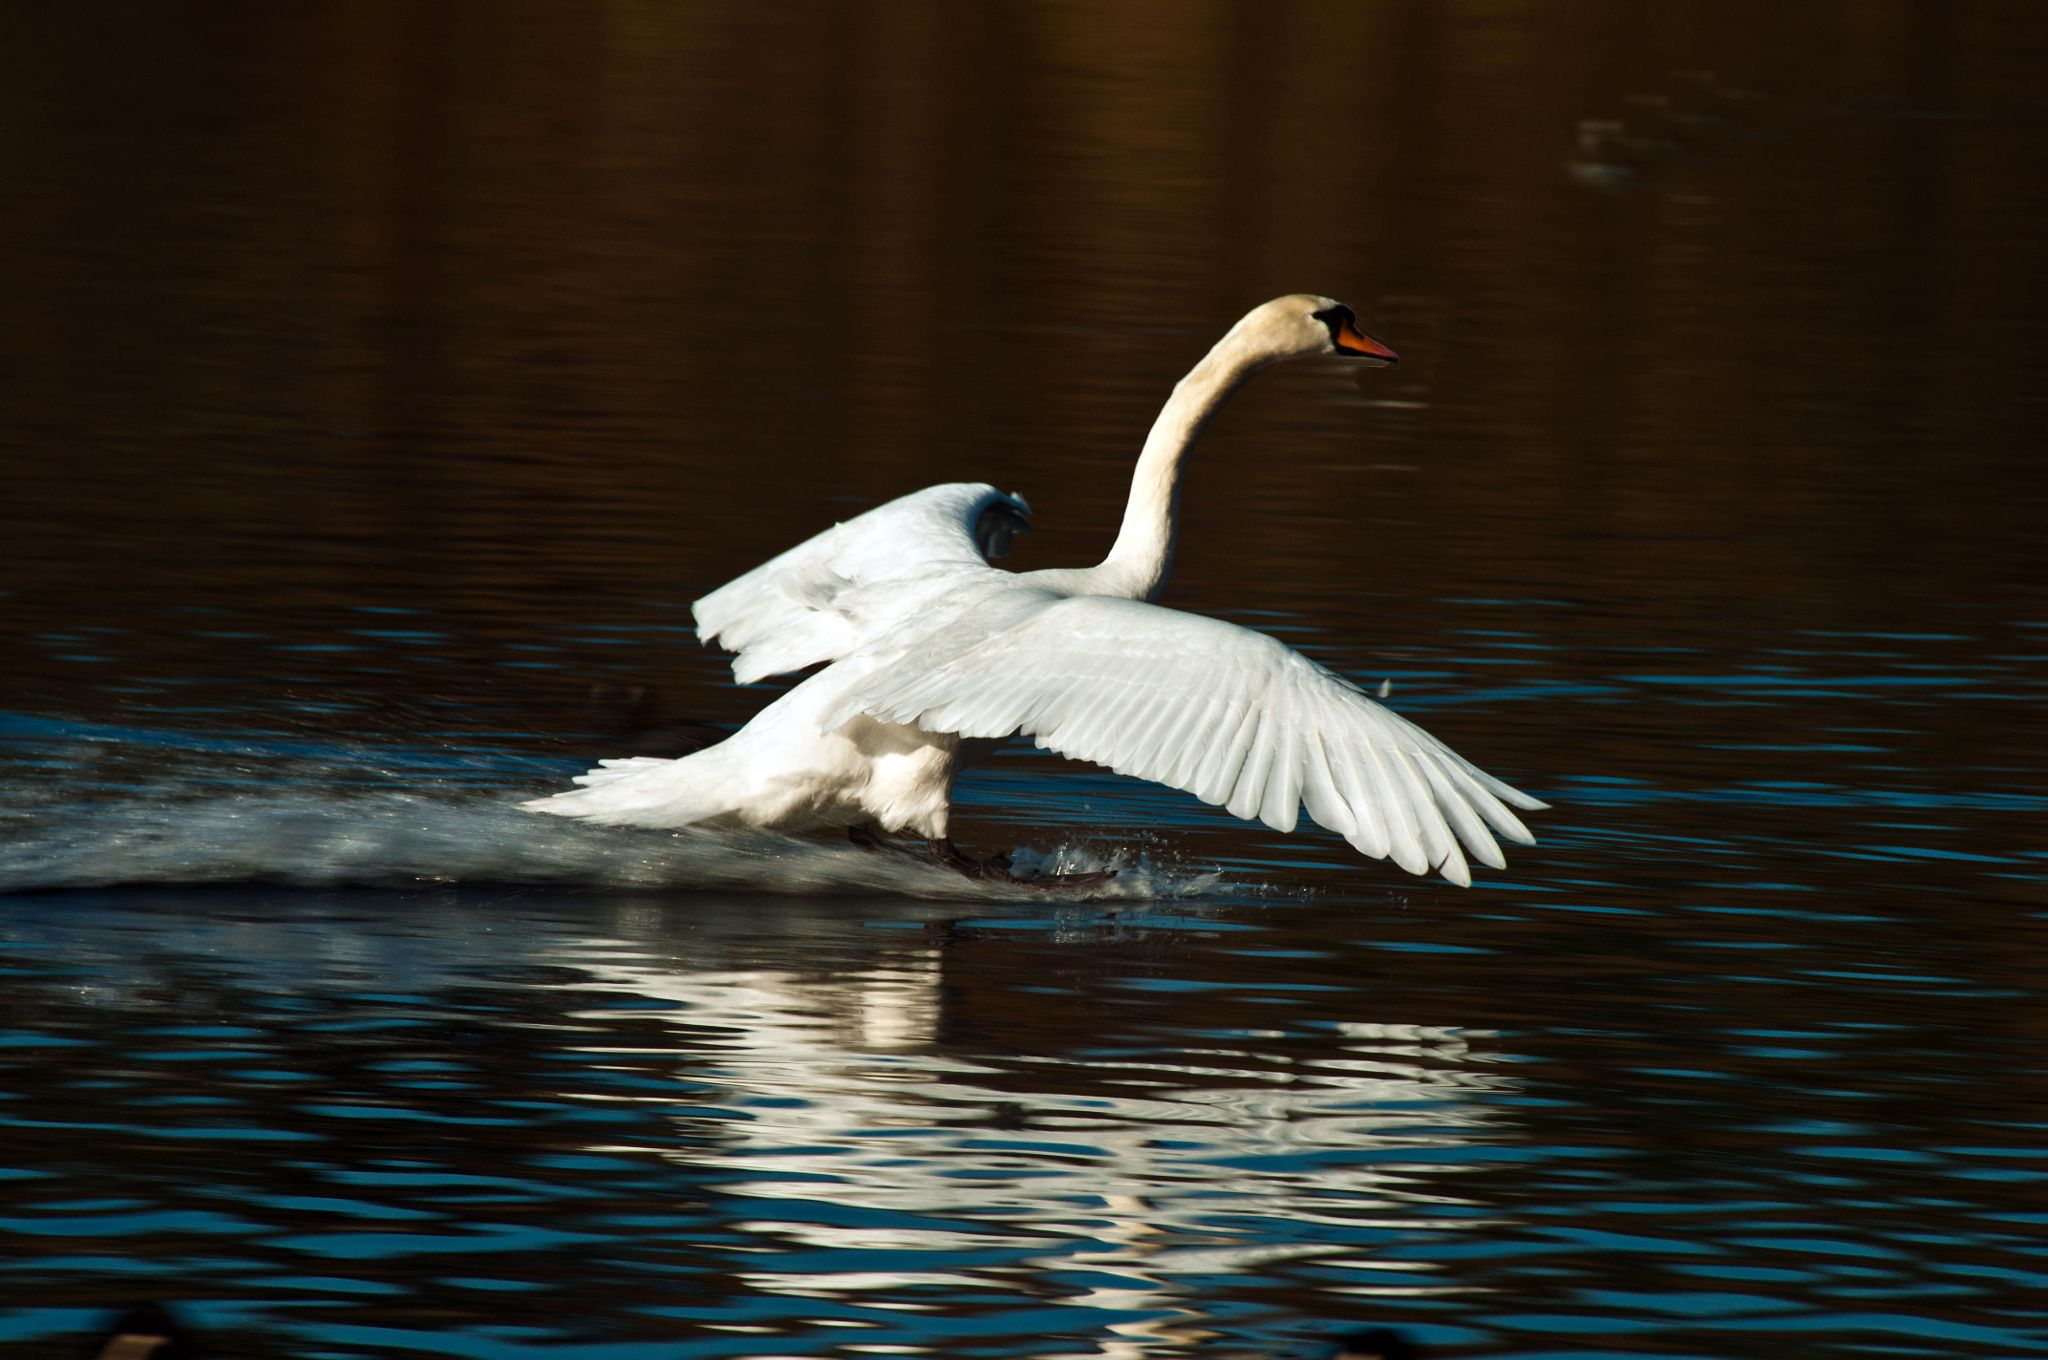 A safe landing - Here is a swan coming in to land on Cosmeston Lake near to the town of Penarth in South Wales.